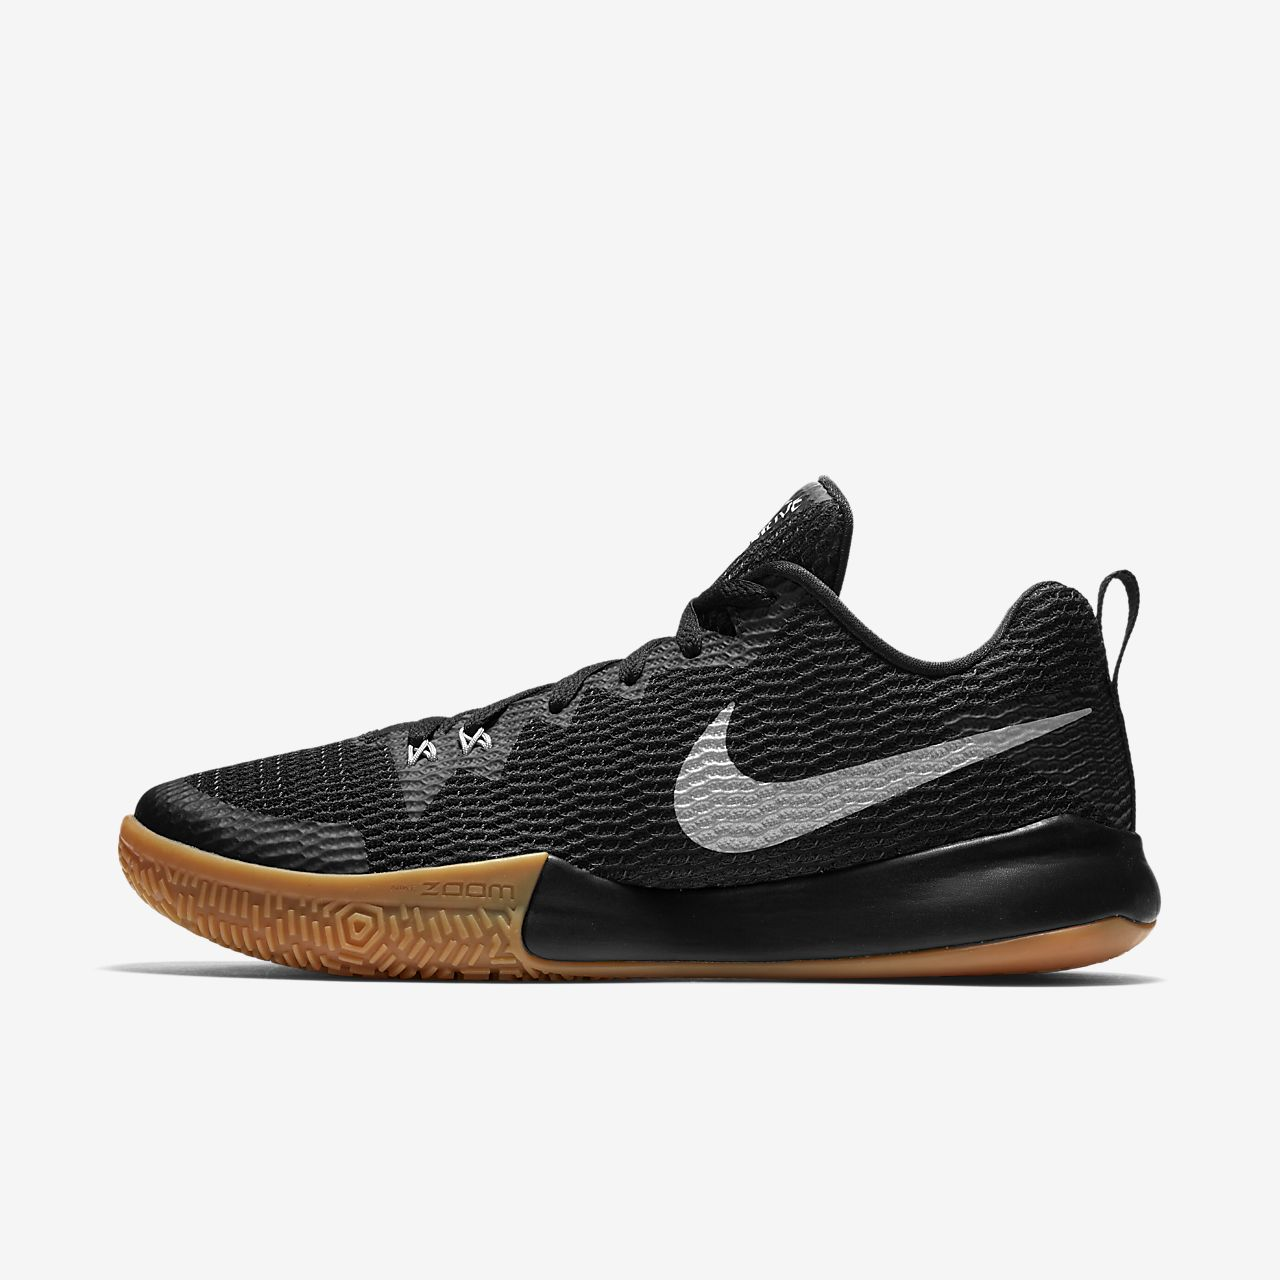 ... Nike Zoom Live II Men's Basketball Shoe